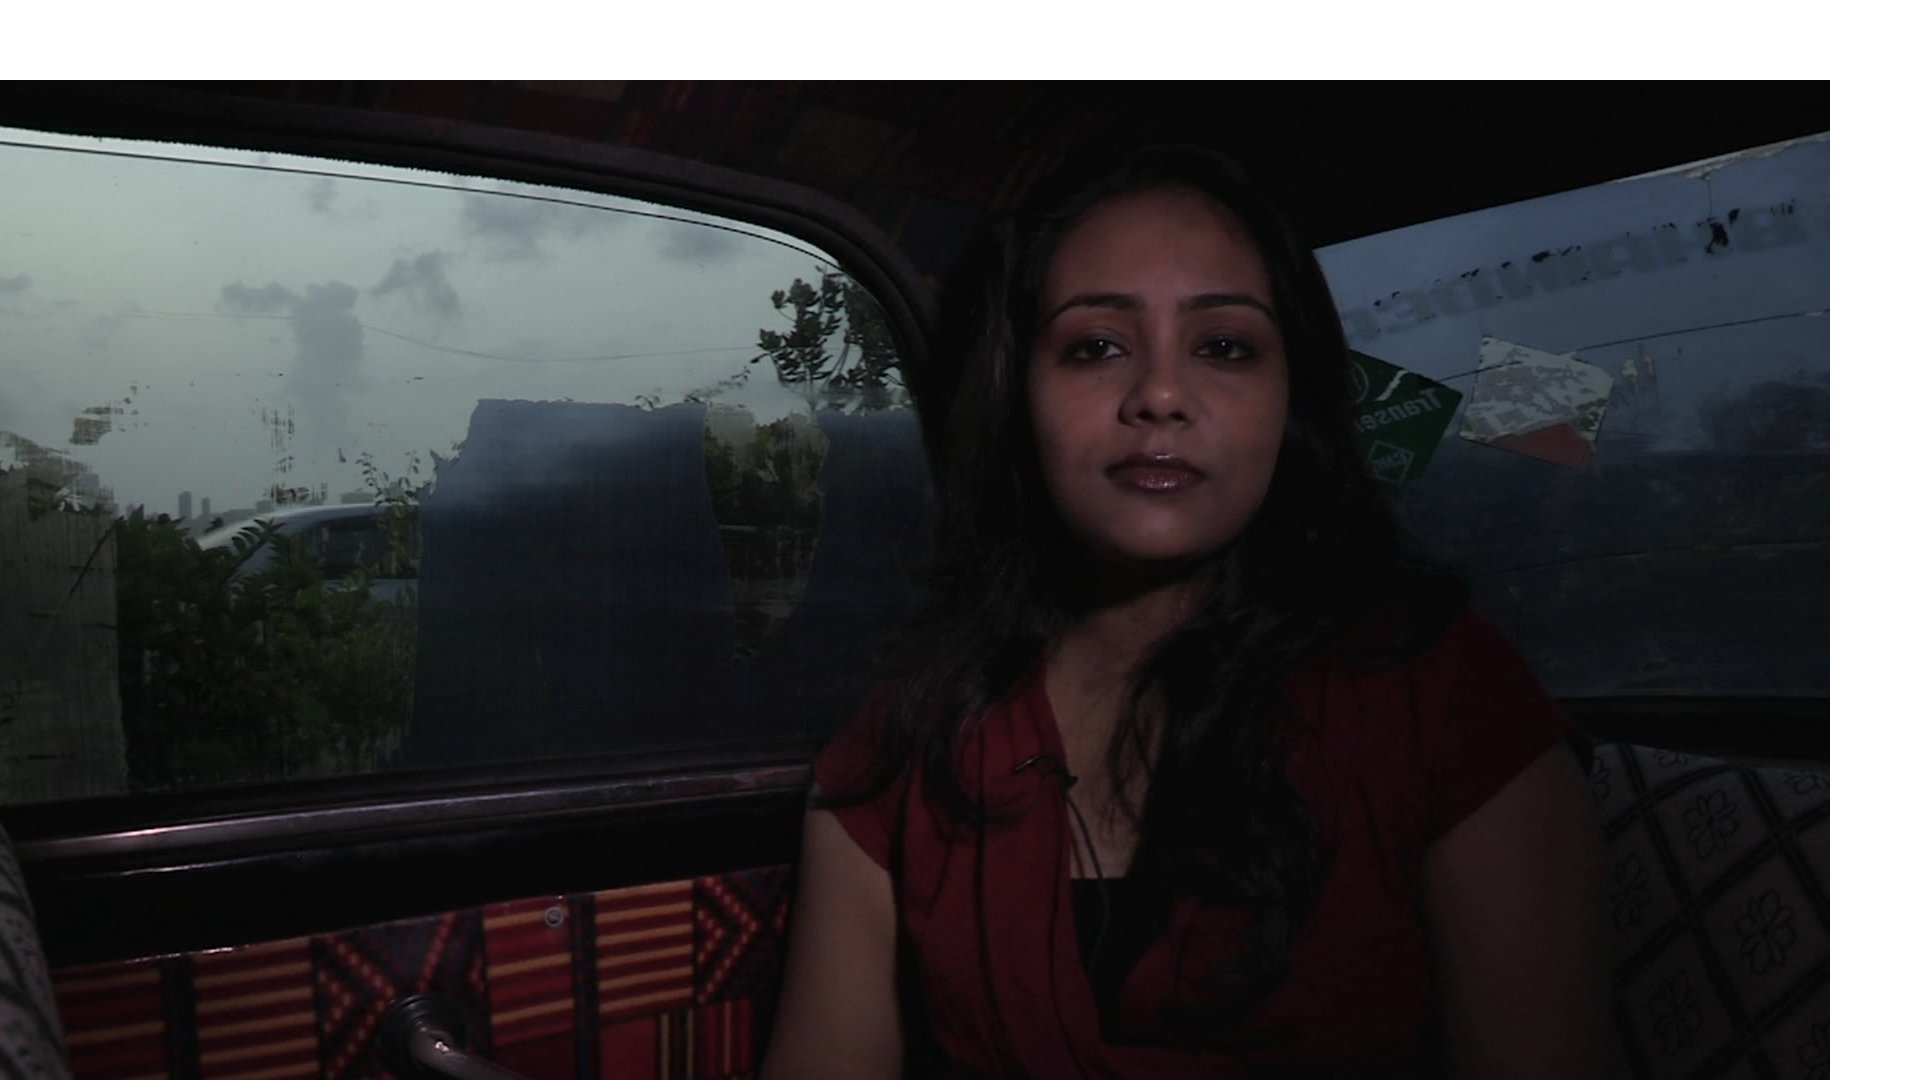 Suruchi Sharma, who features in Rupa Jha's documentary